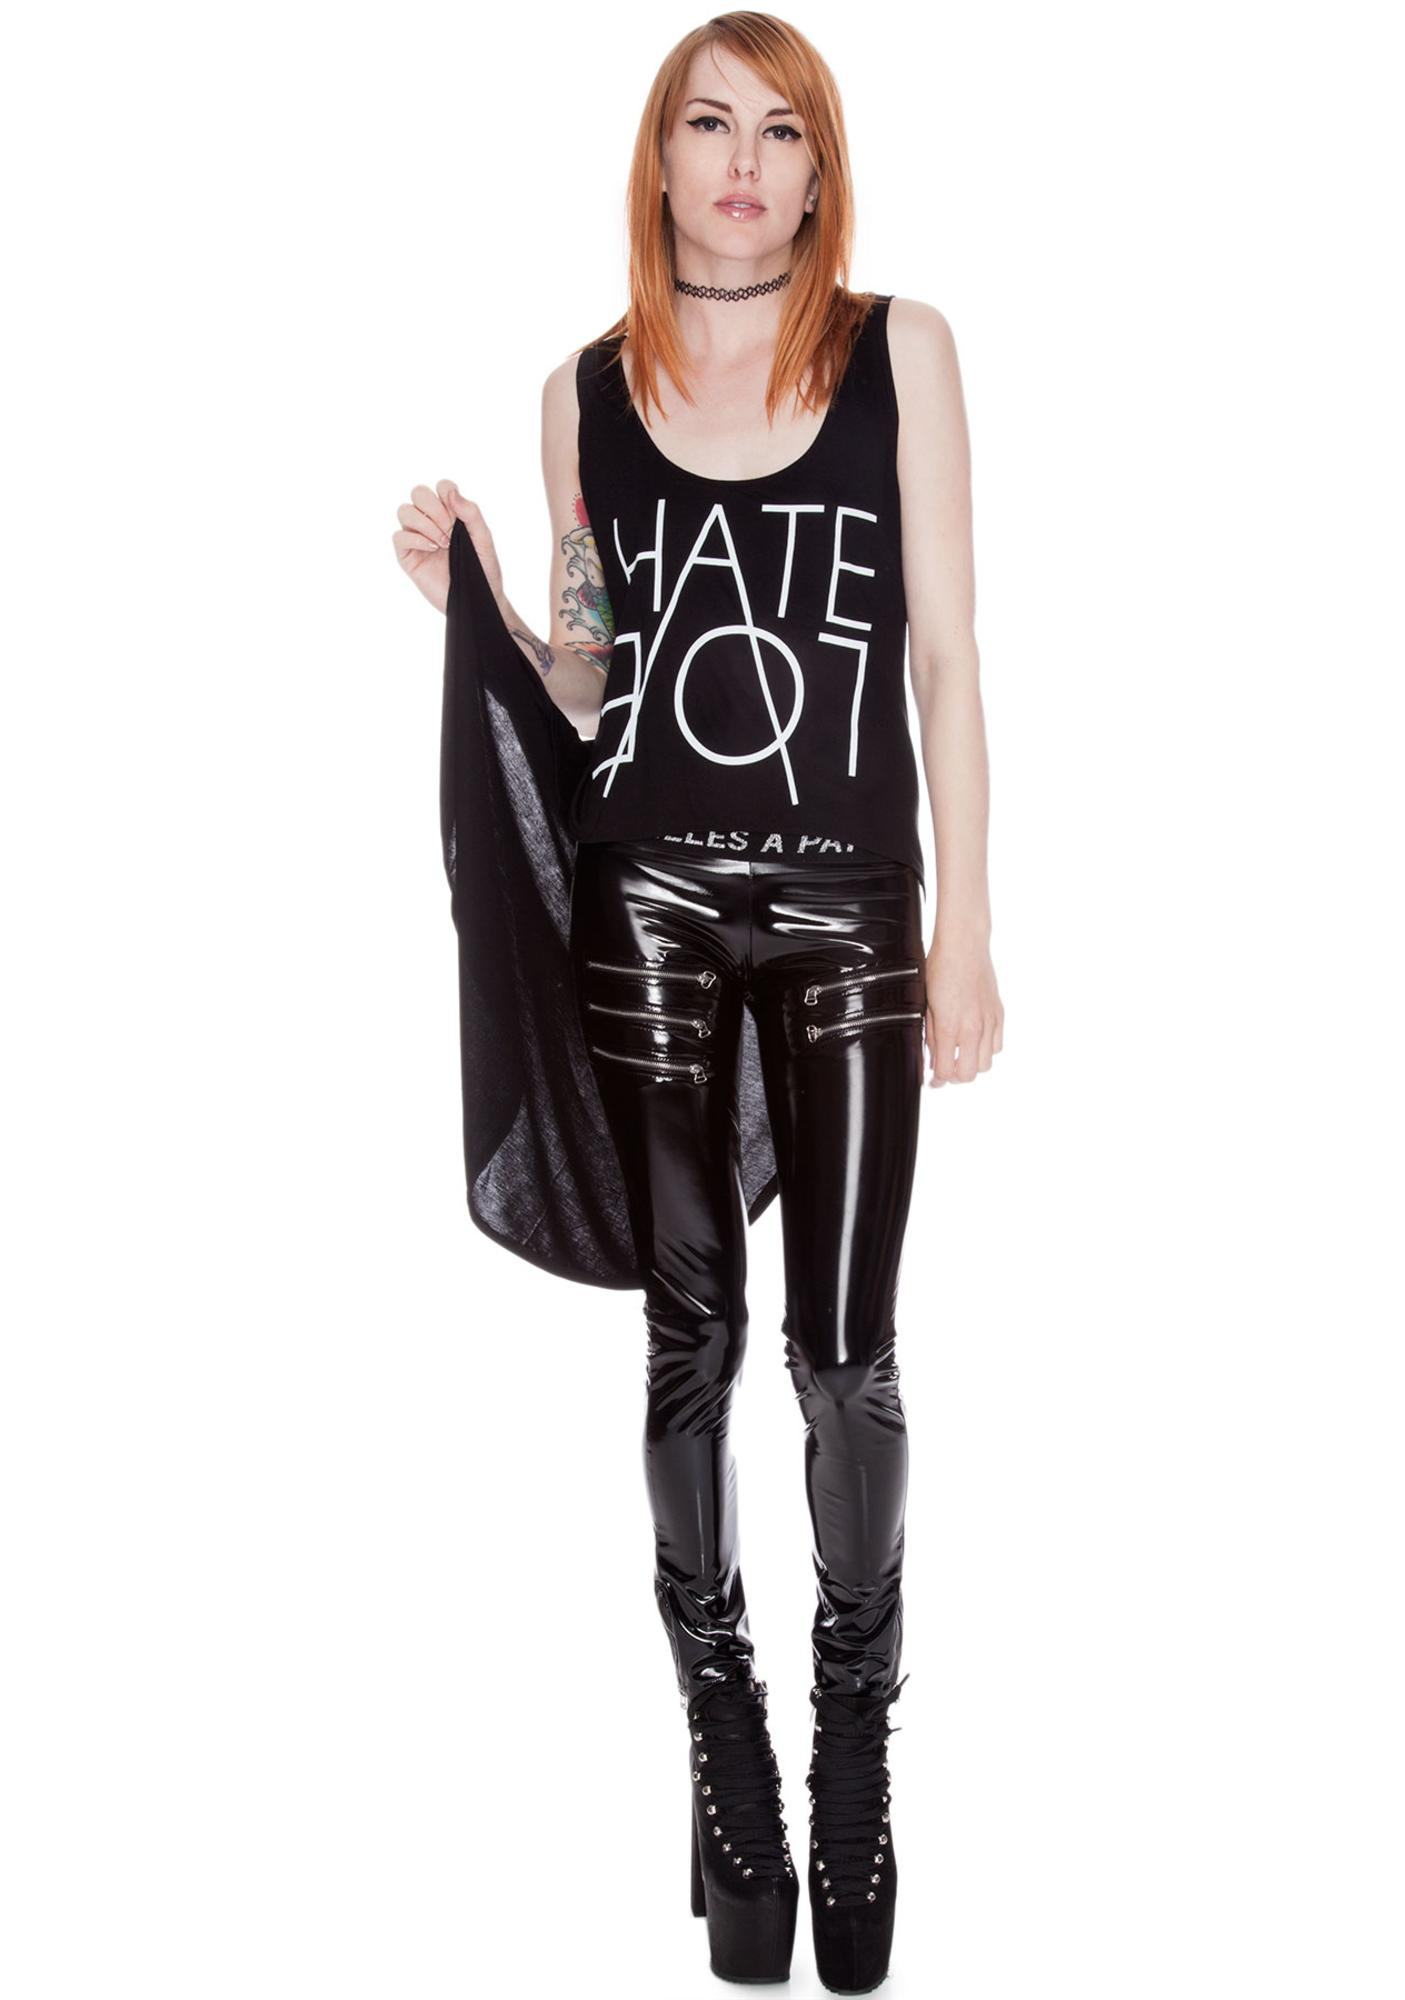 Hate Long Tail Crop Tank